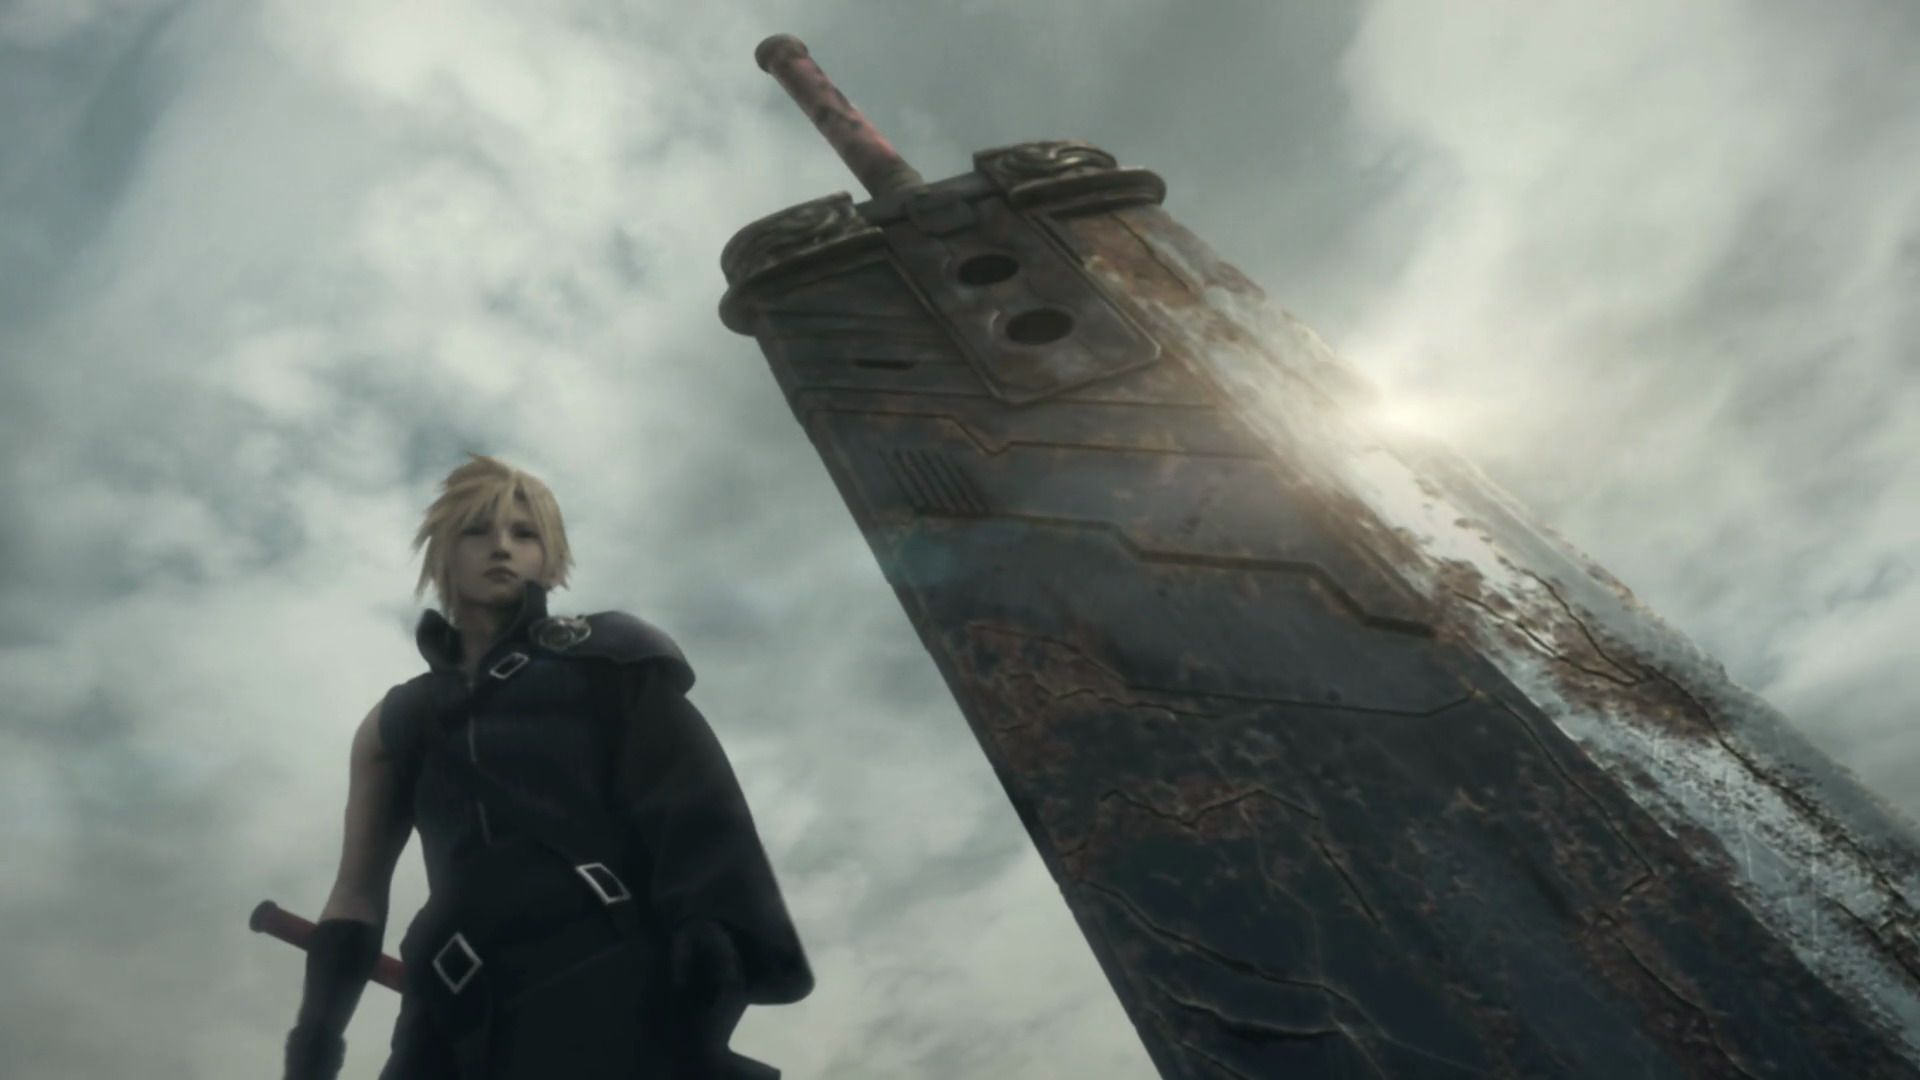 Final Fantasy Vii Cloud Strife Wallpapers Hd Download